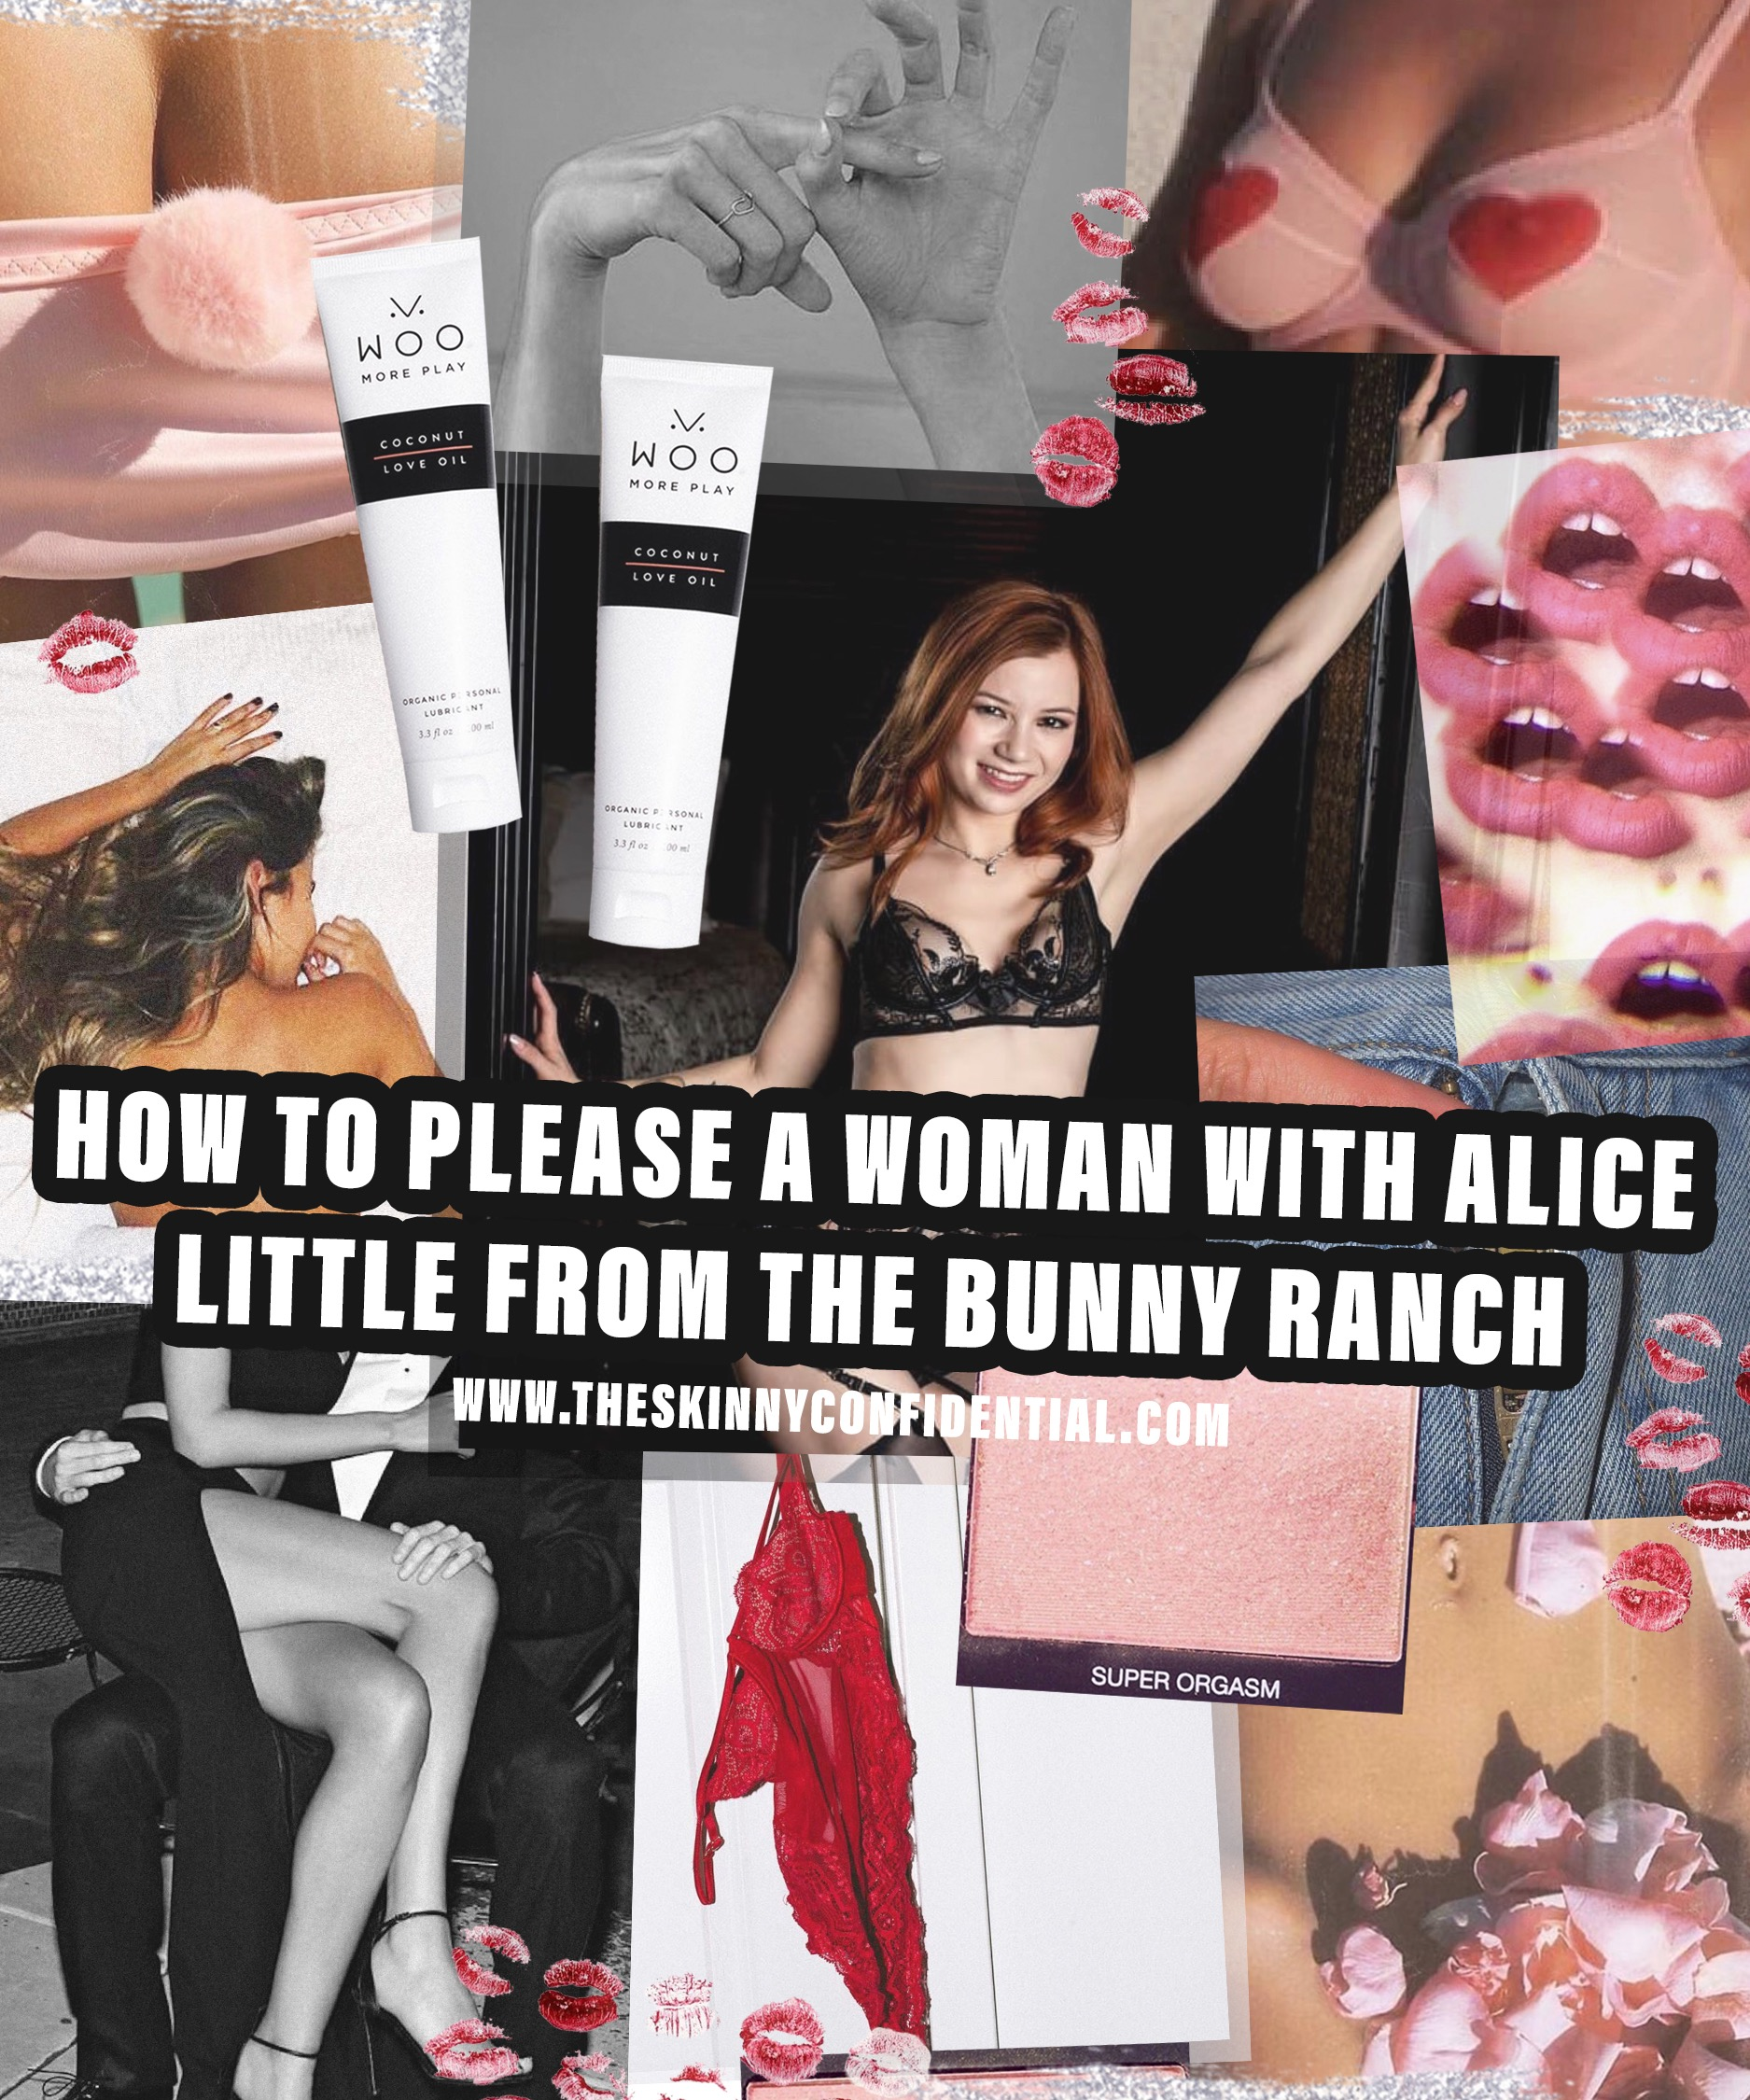 Go Down On Her Like a Pro: Oral Sex Tips From The Bunny Ranch's Top Bunny